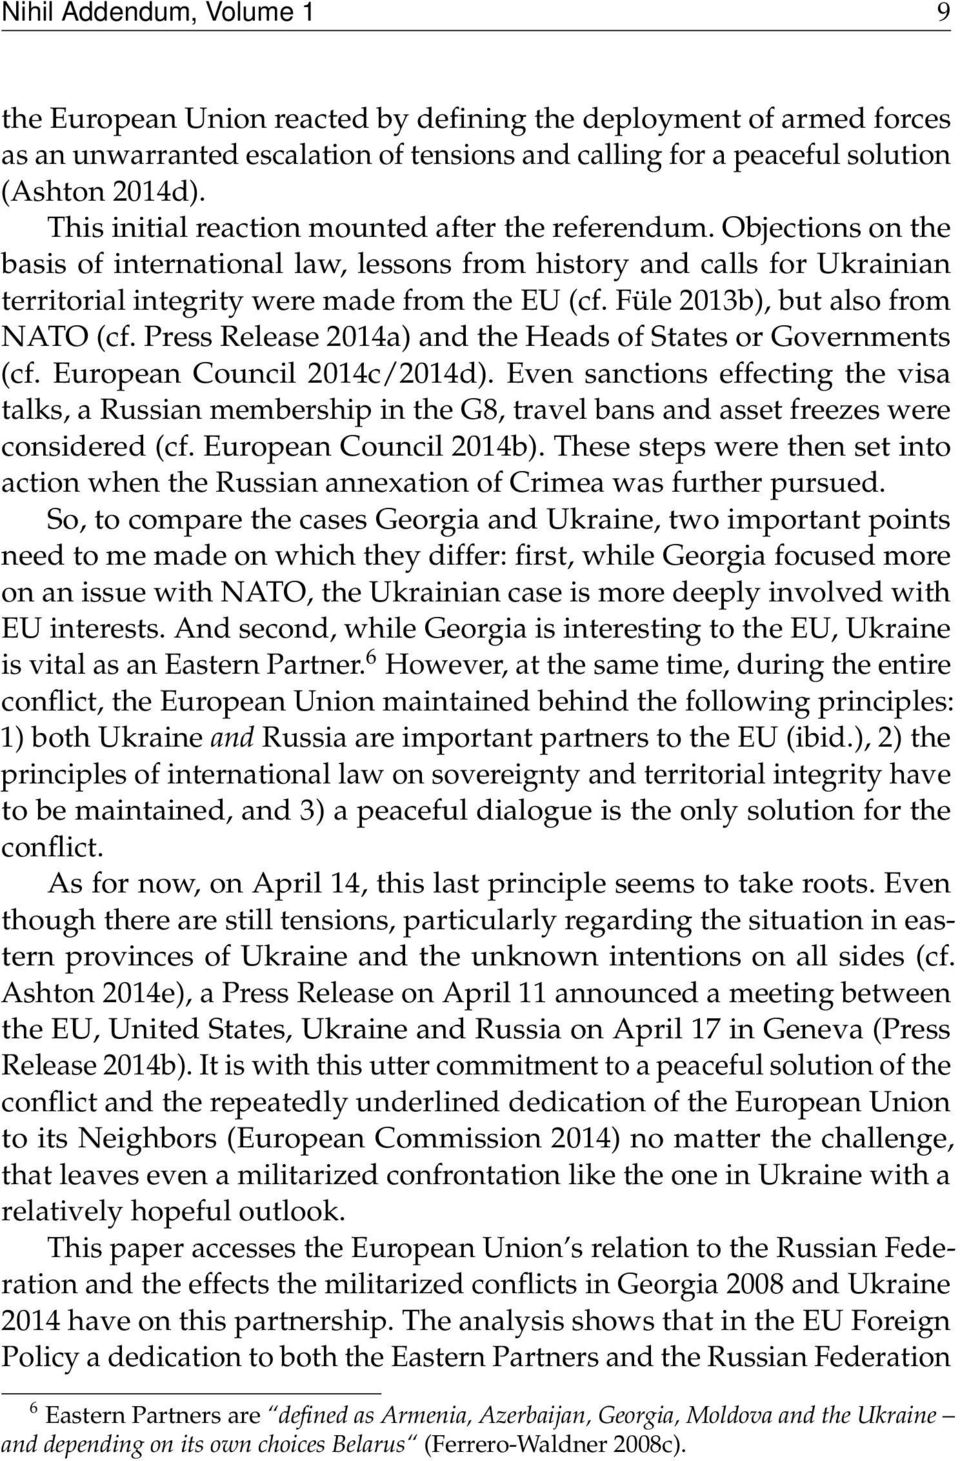 Füle 2013b), but also from NATO (cf. Press Release 2014a) and the Heads of States or Governments (cf. European Council 2014c/2014d).